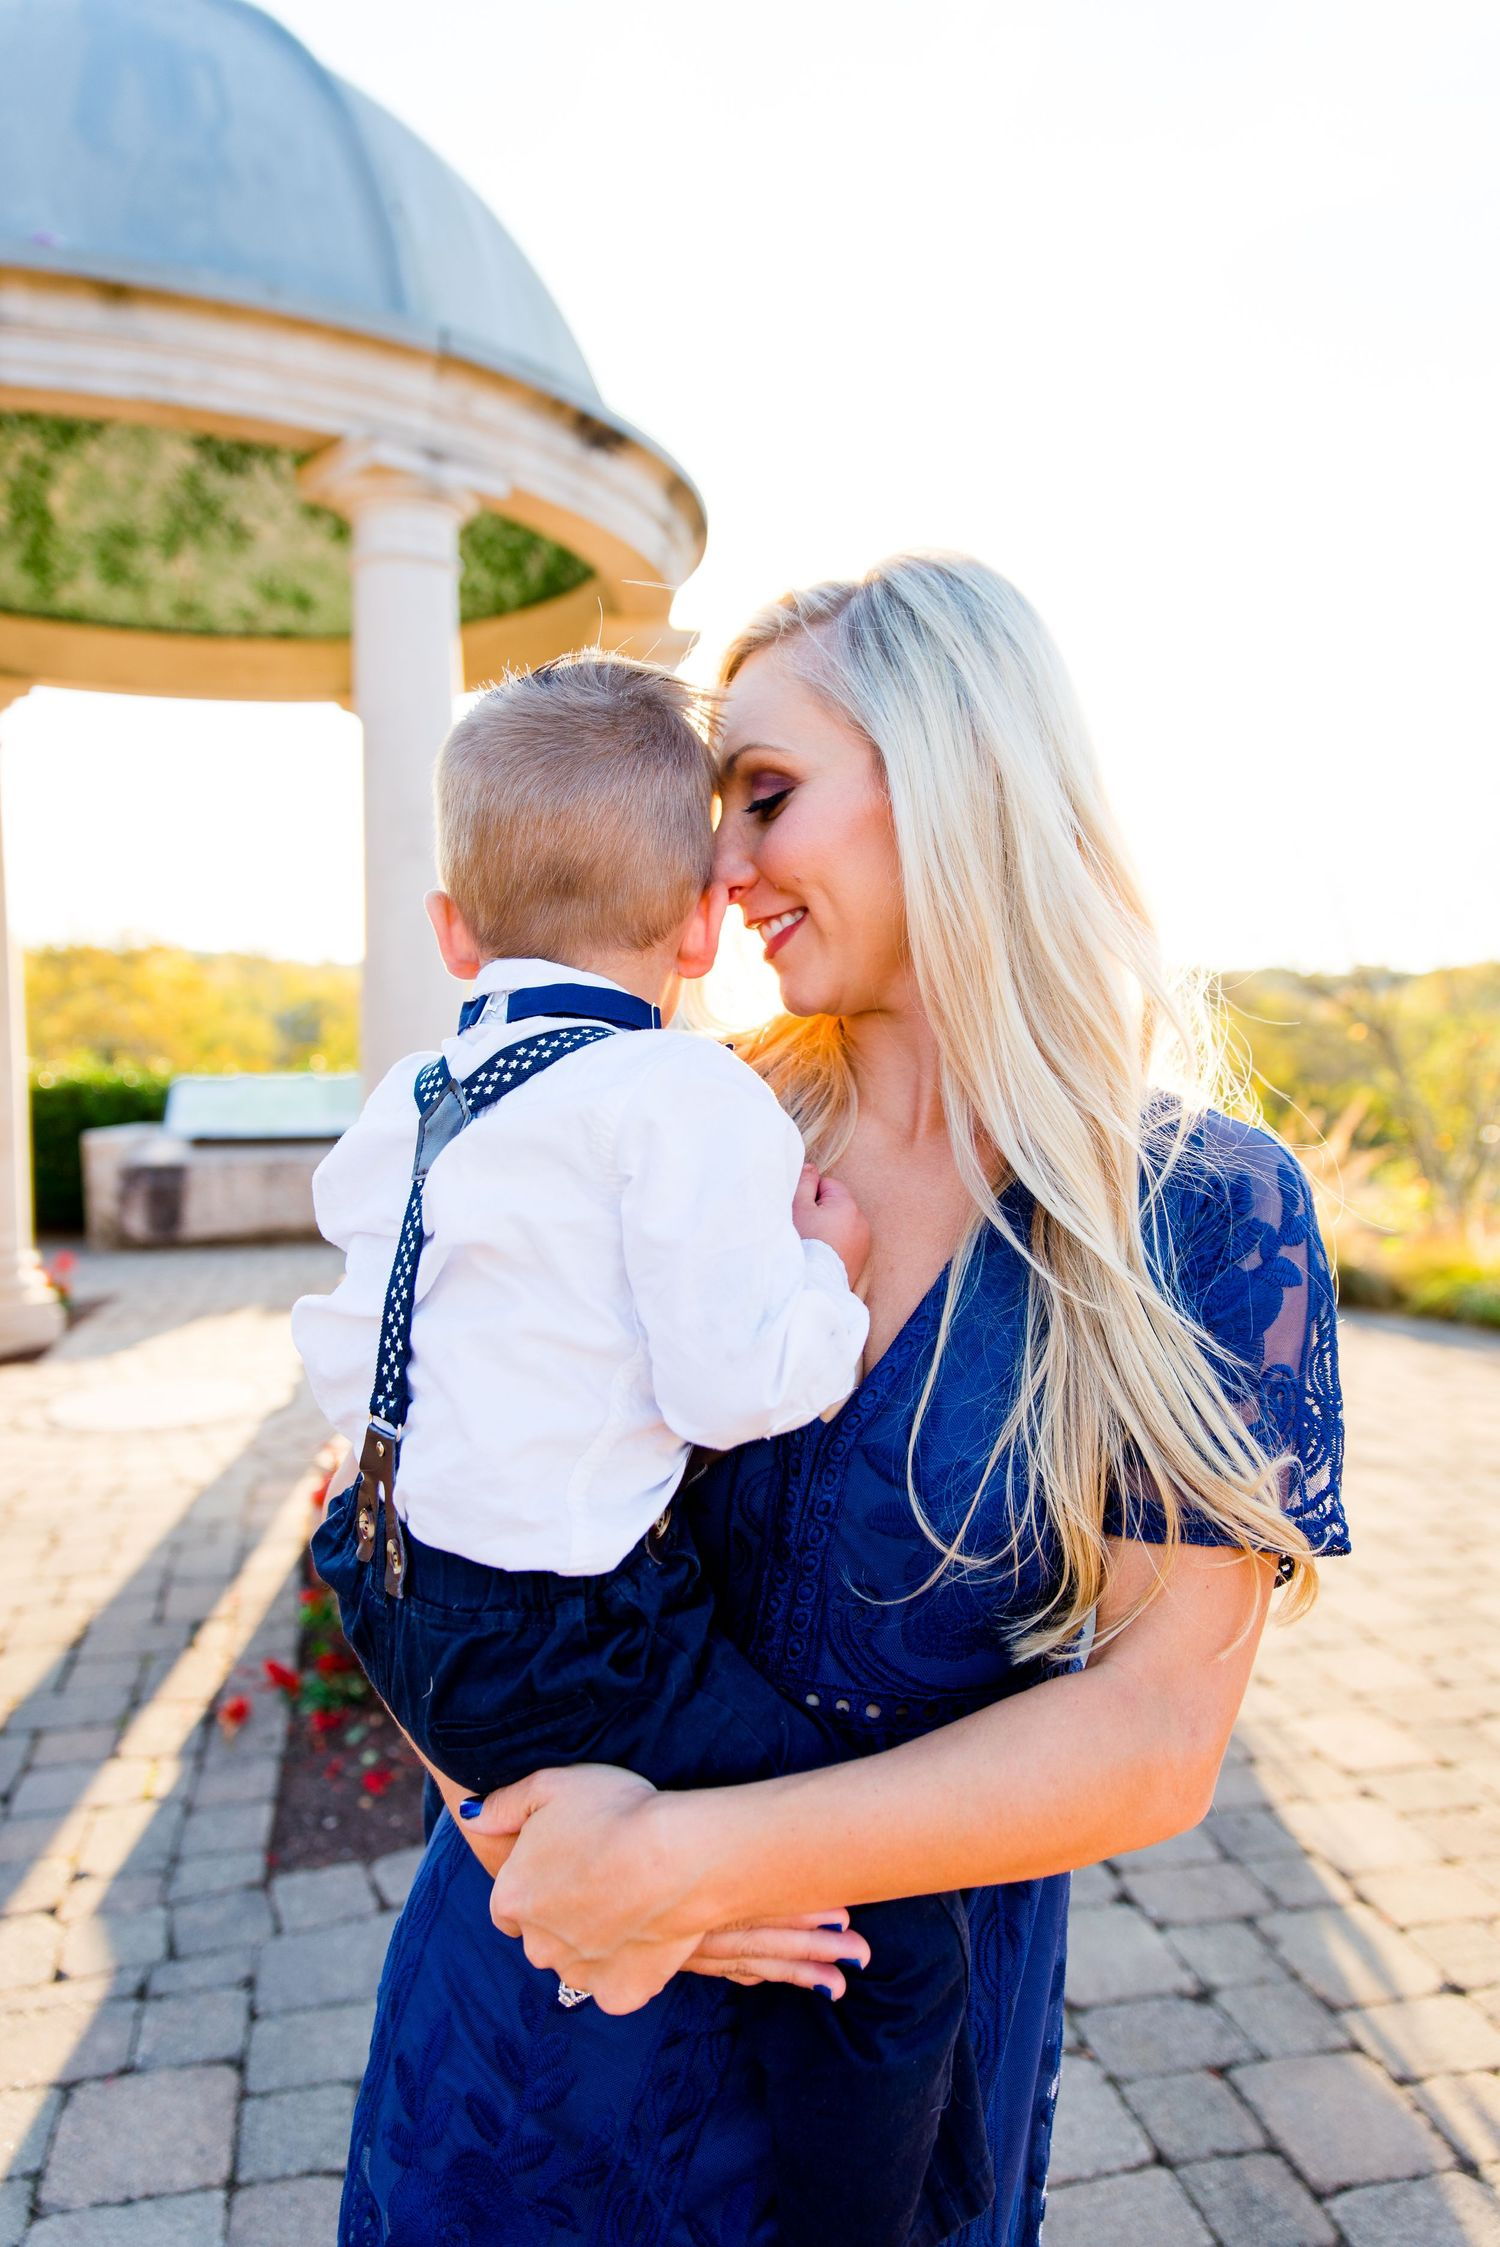 mom with long blonde hair in a navy lace dress putting her nose on her young baby son's cheek